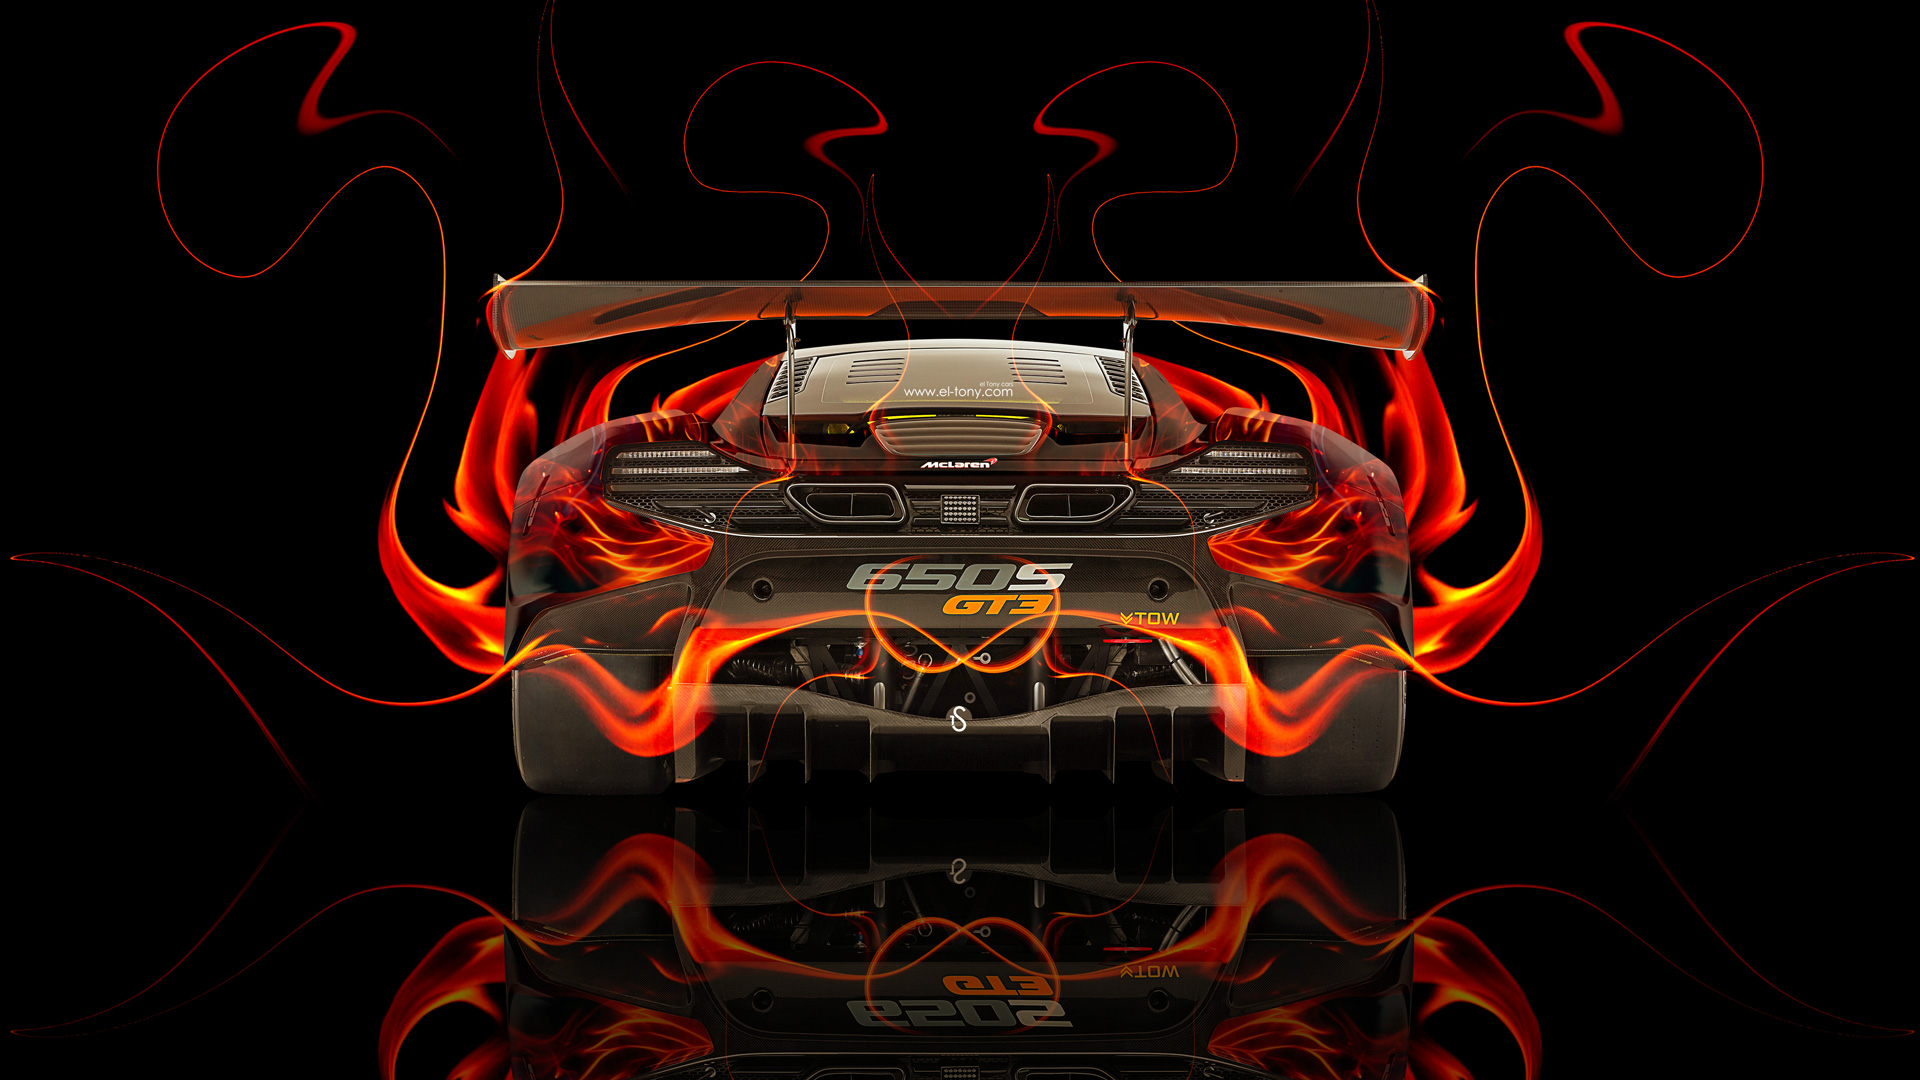 Marvelous McLaren 650S GT3 Back Fire Abstract Car 2014